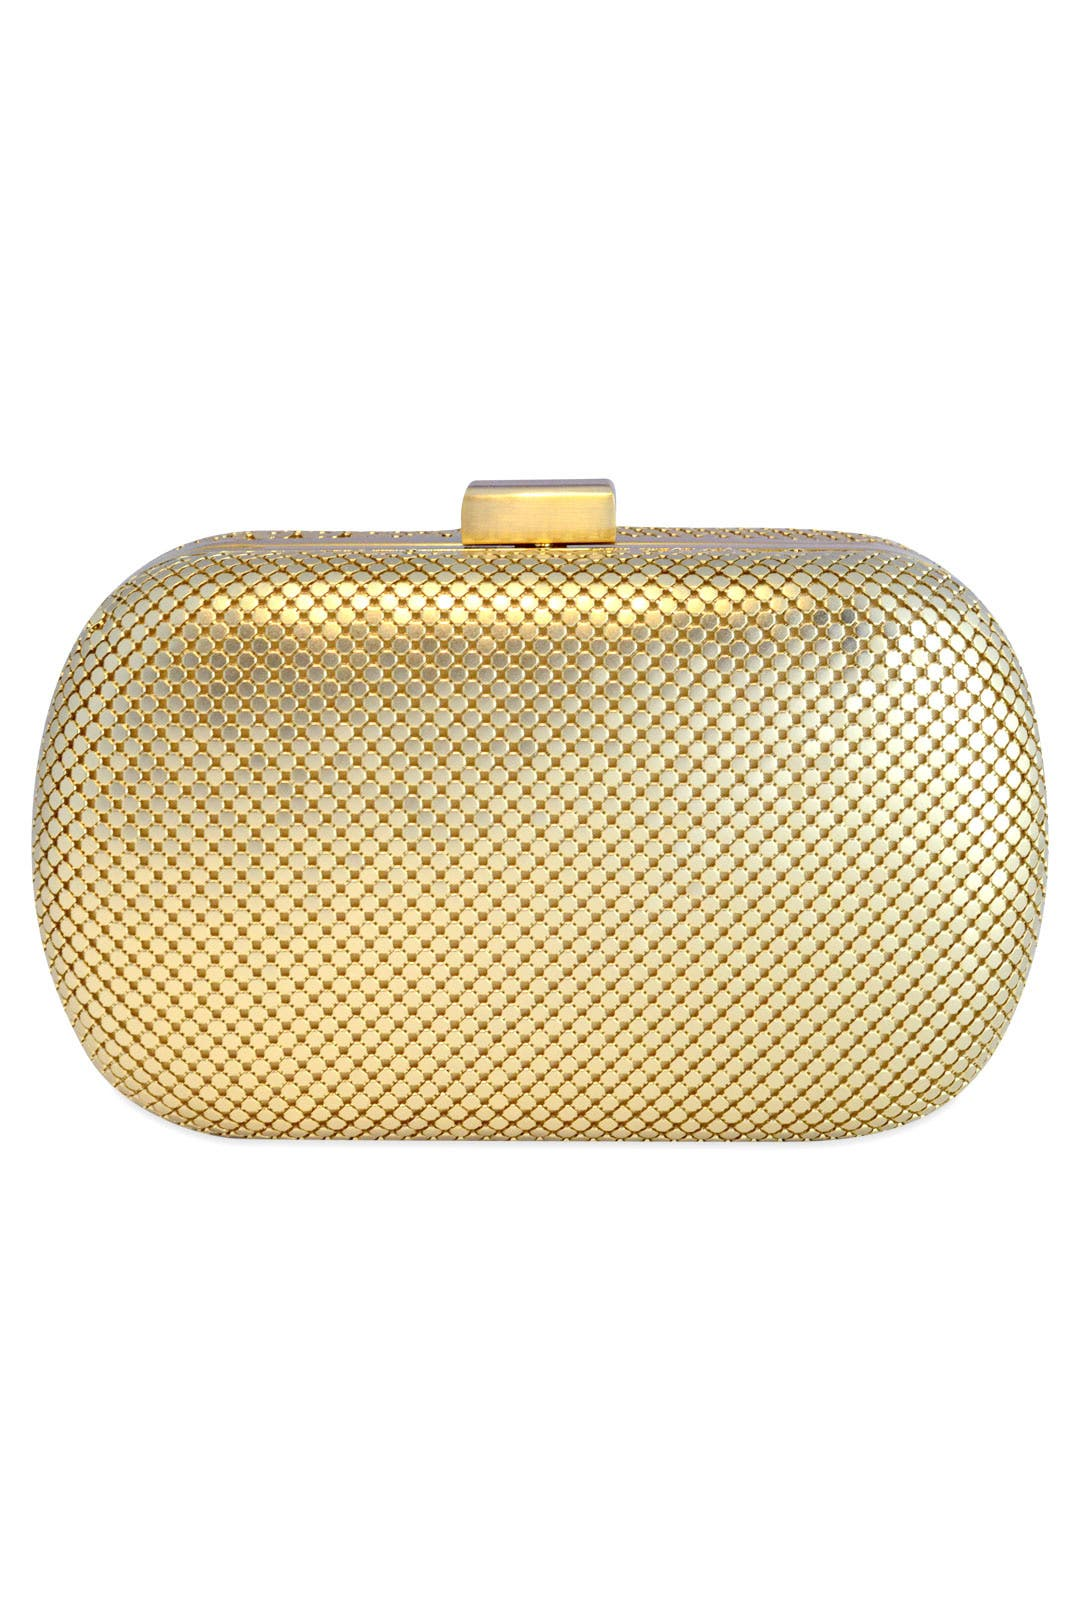 Gilded Lattice Clutch by Whiting & Davis